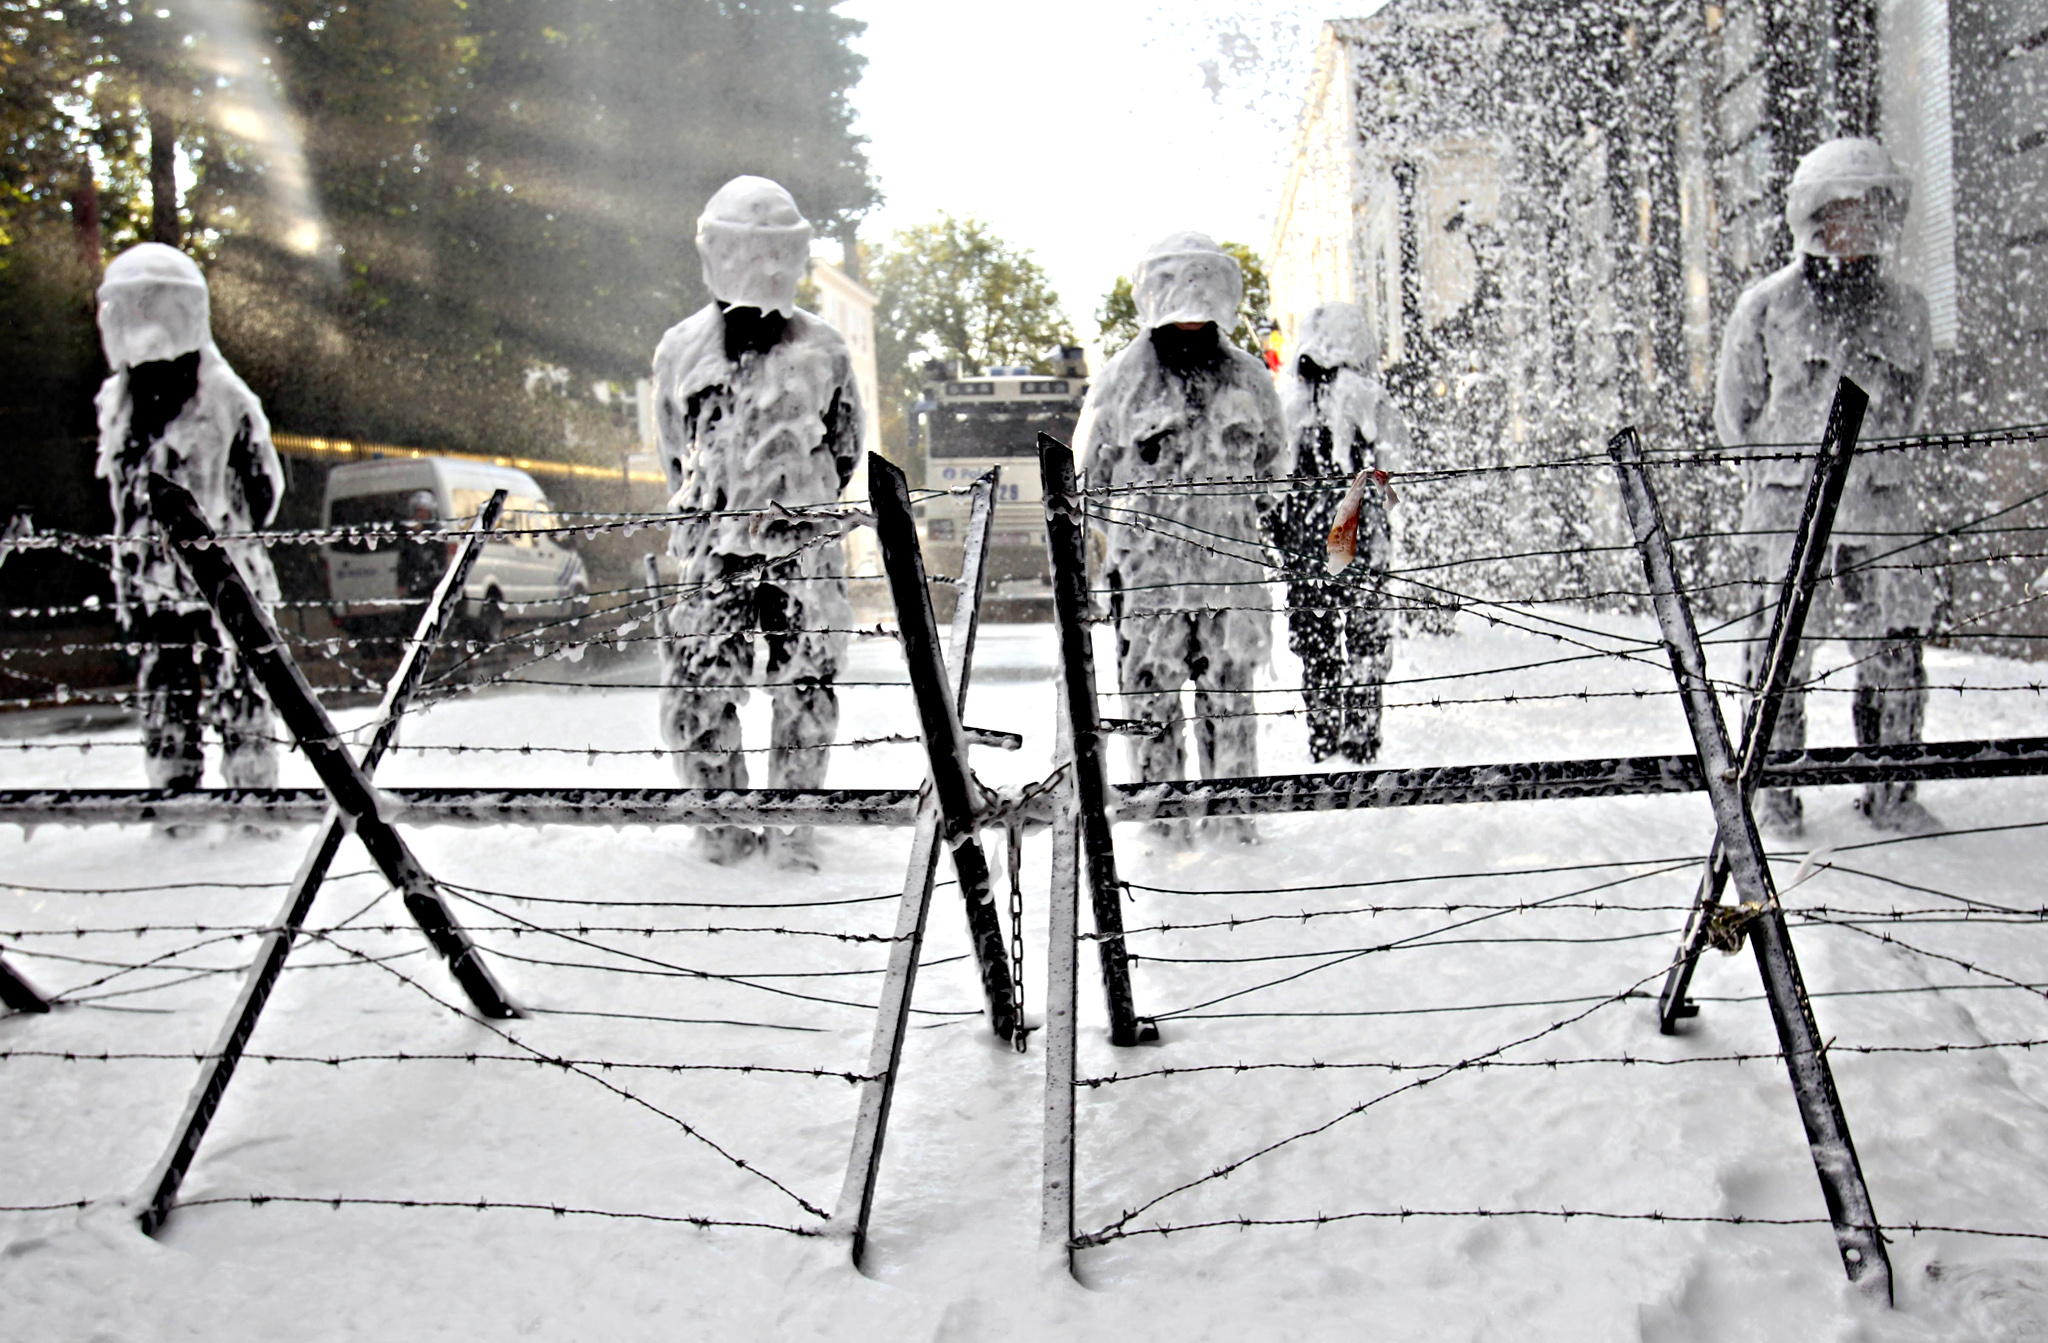 Policemen stand guard while firefighters are spraying foam from behind the barricades